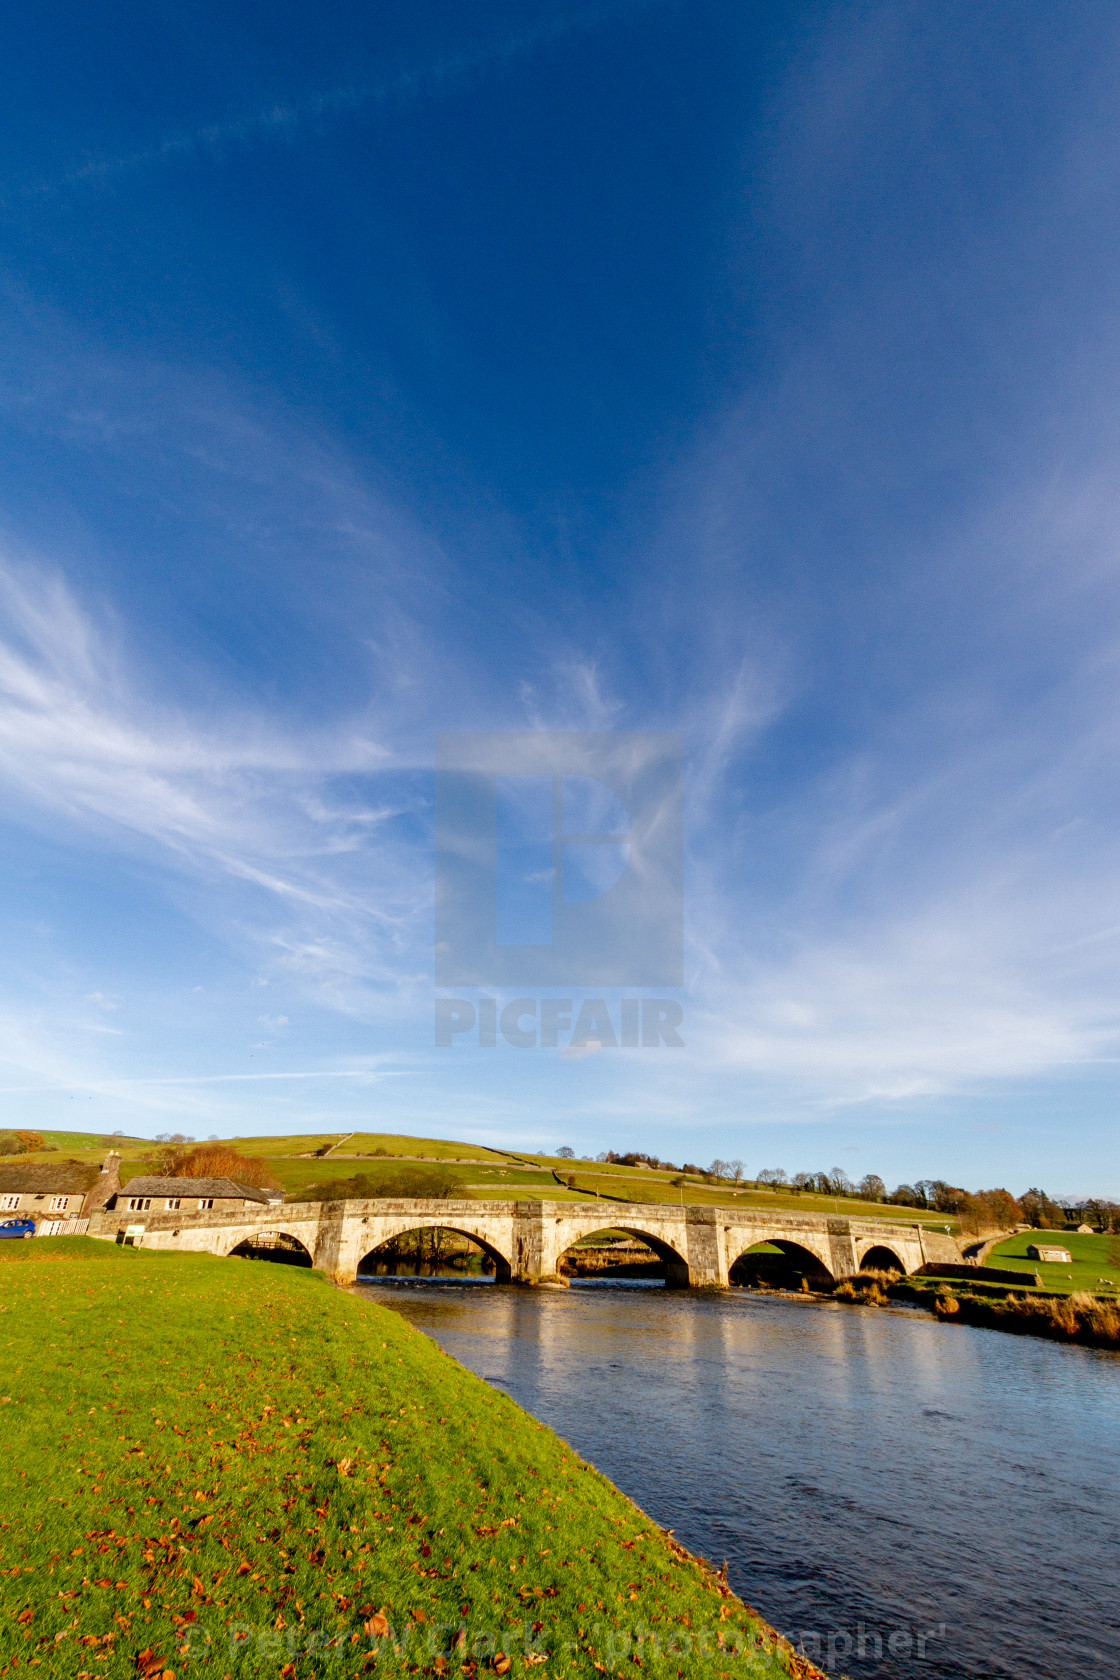 """Burnsall, Yorkshire Dales Village, England, Arched Stone Bridge over the River Wharfe"" stock image"